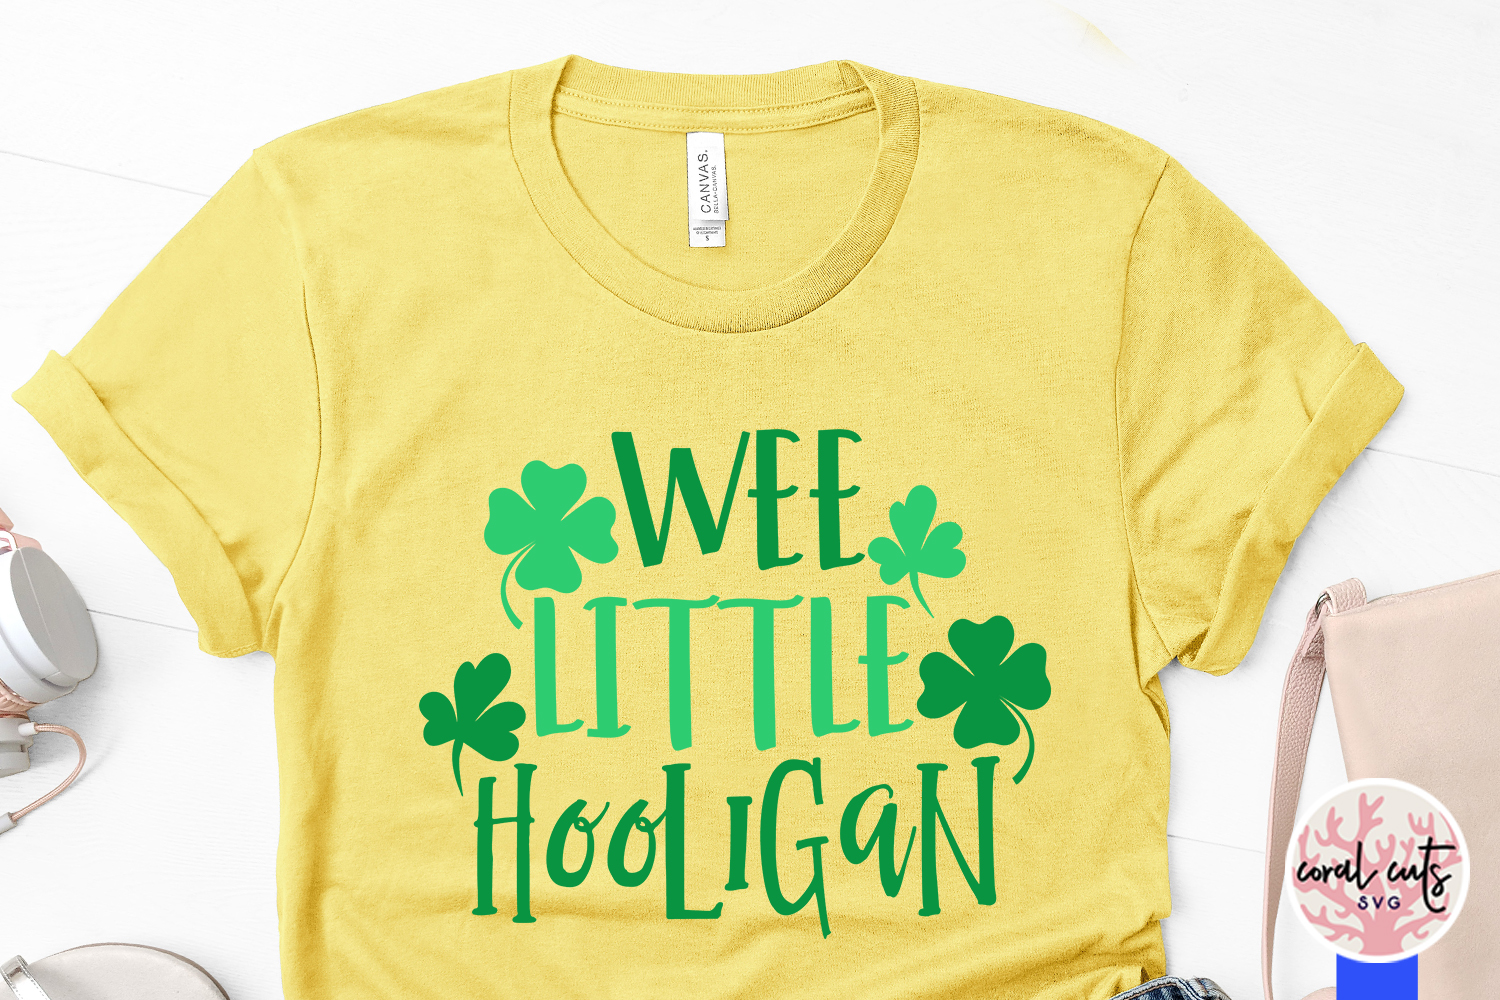 Wee little hooligan - St. Patrick's Day SVG EPS DXF PNG example image 3